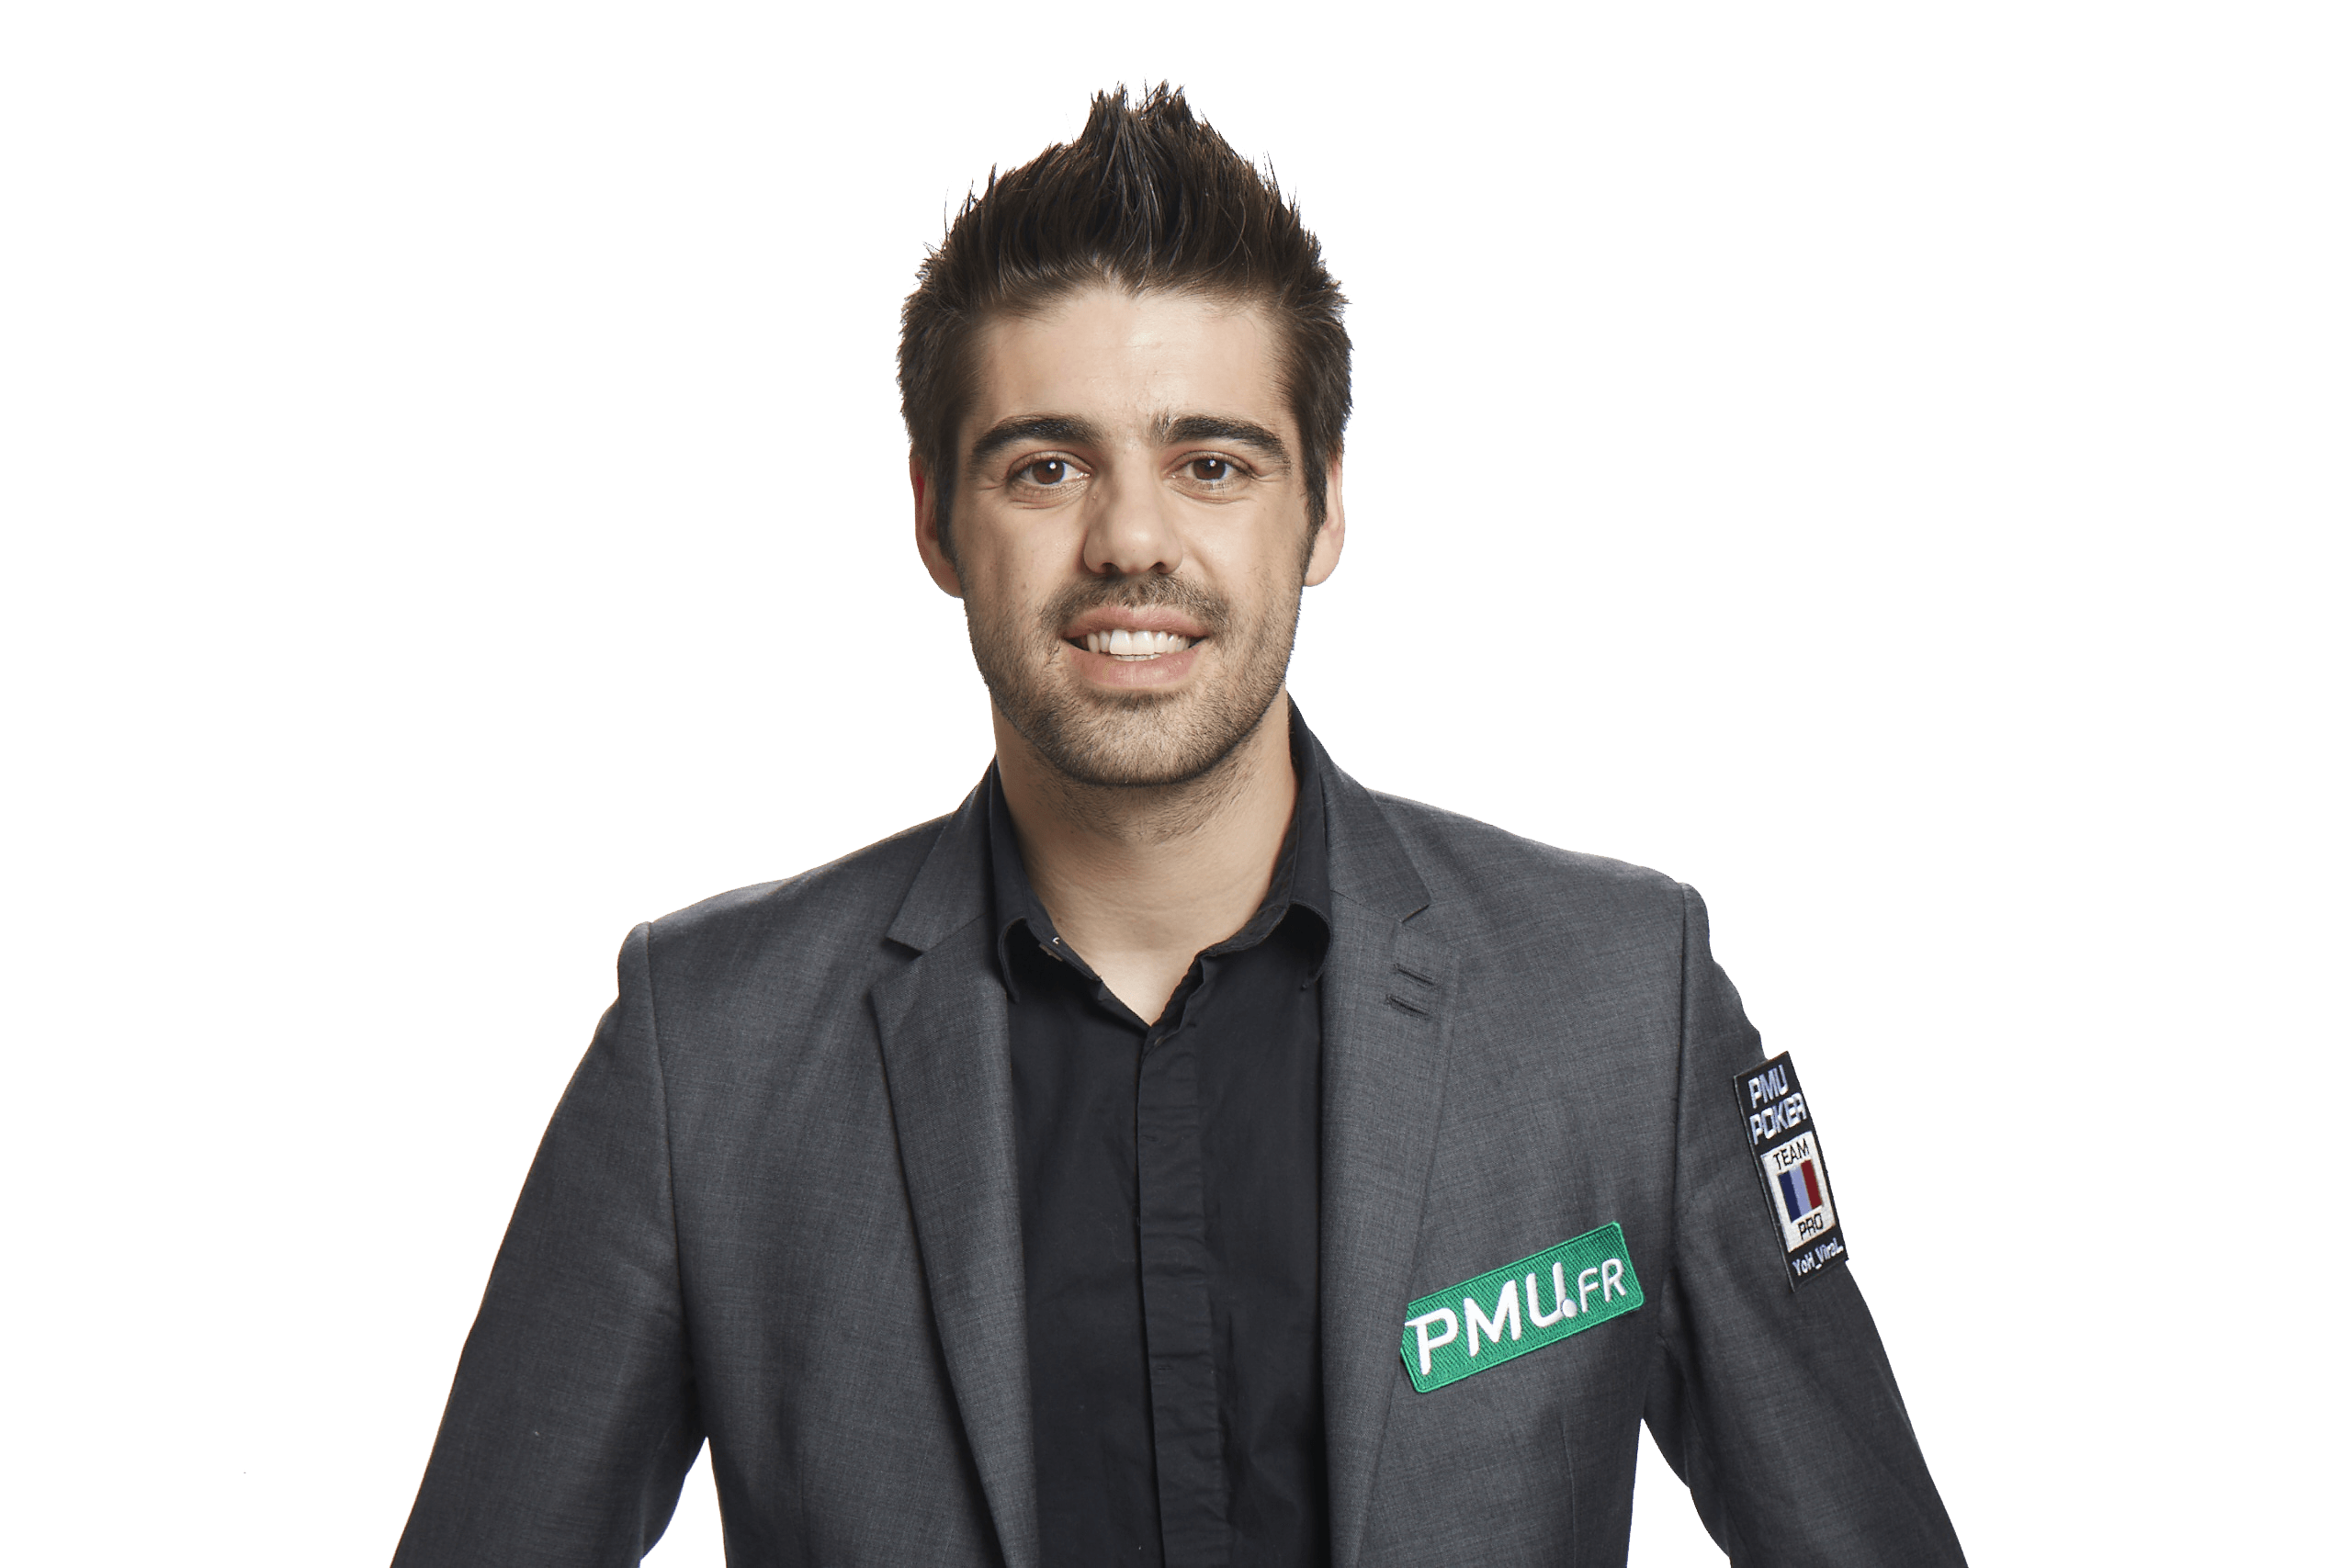 JOHAN GUILBERT - TEAM PRO PMU POKER